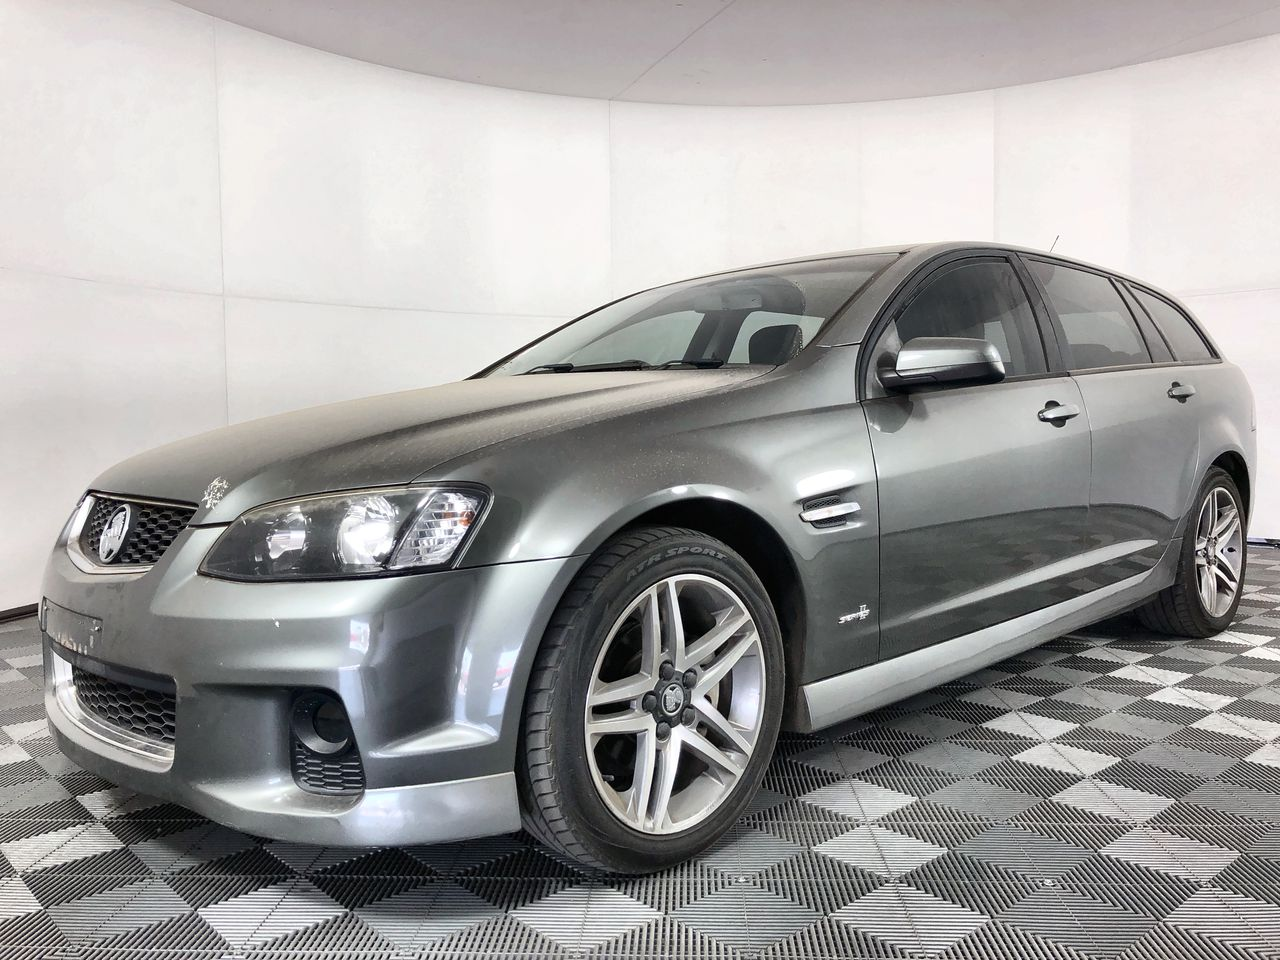 2011 Holden VE Commodore SV6 Series 2 133,224 Km's